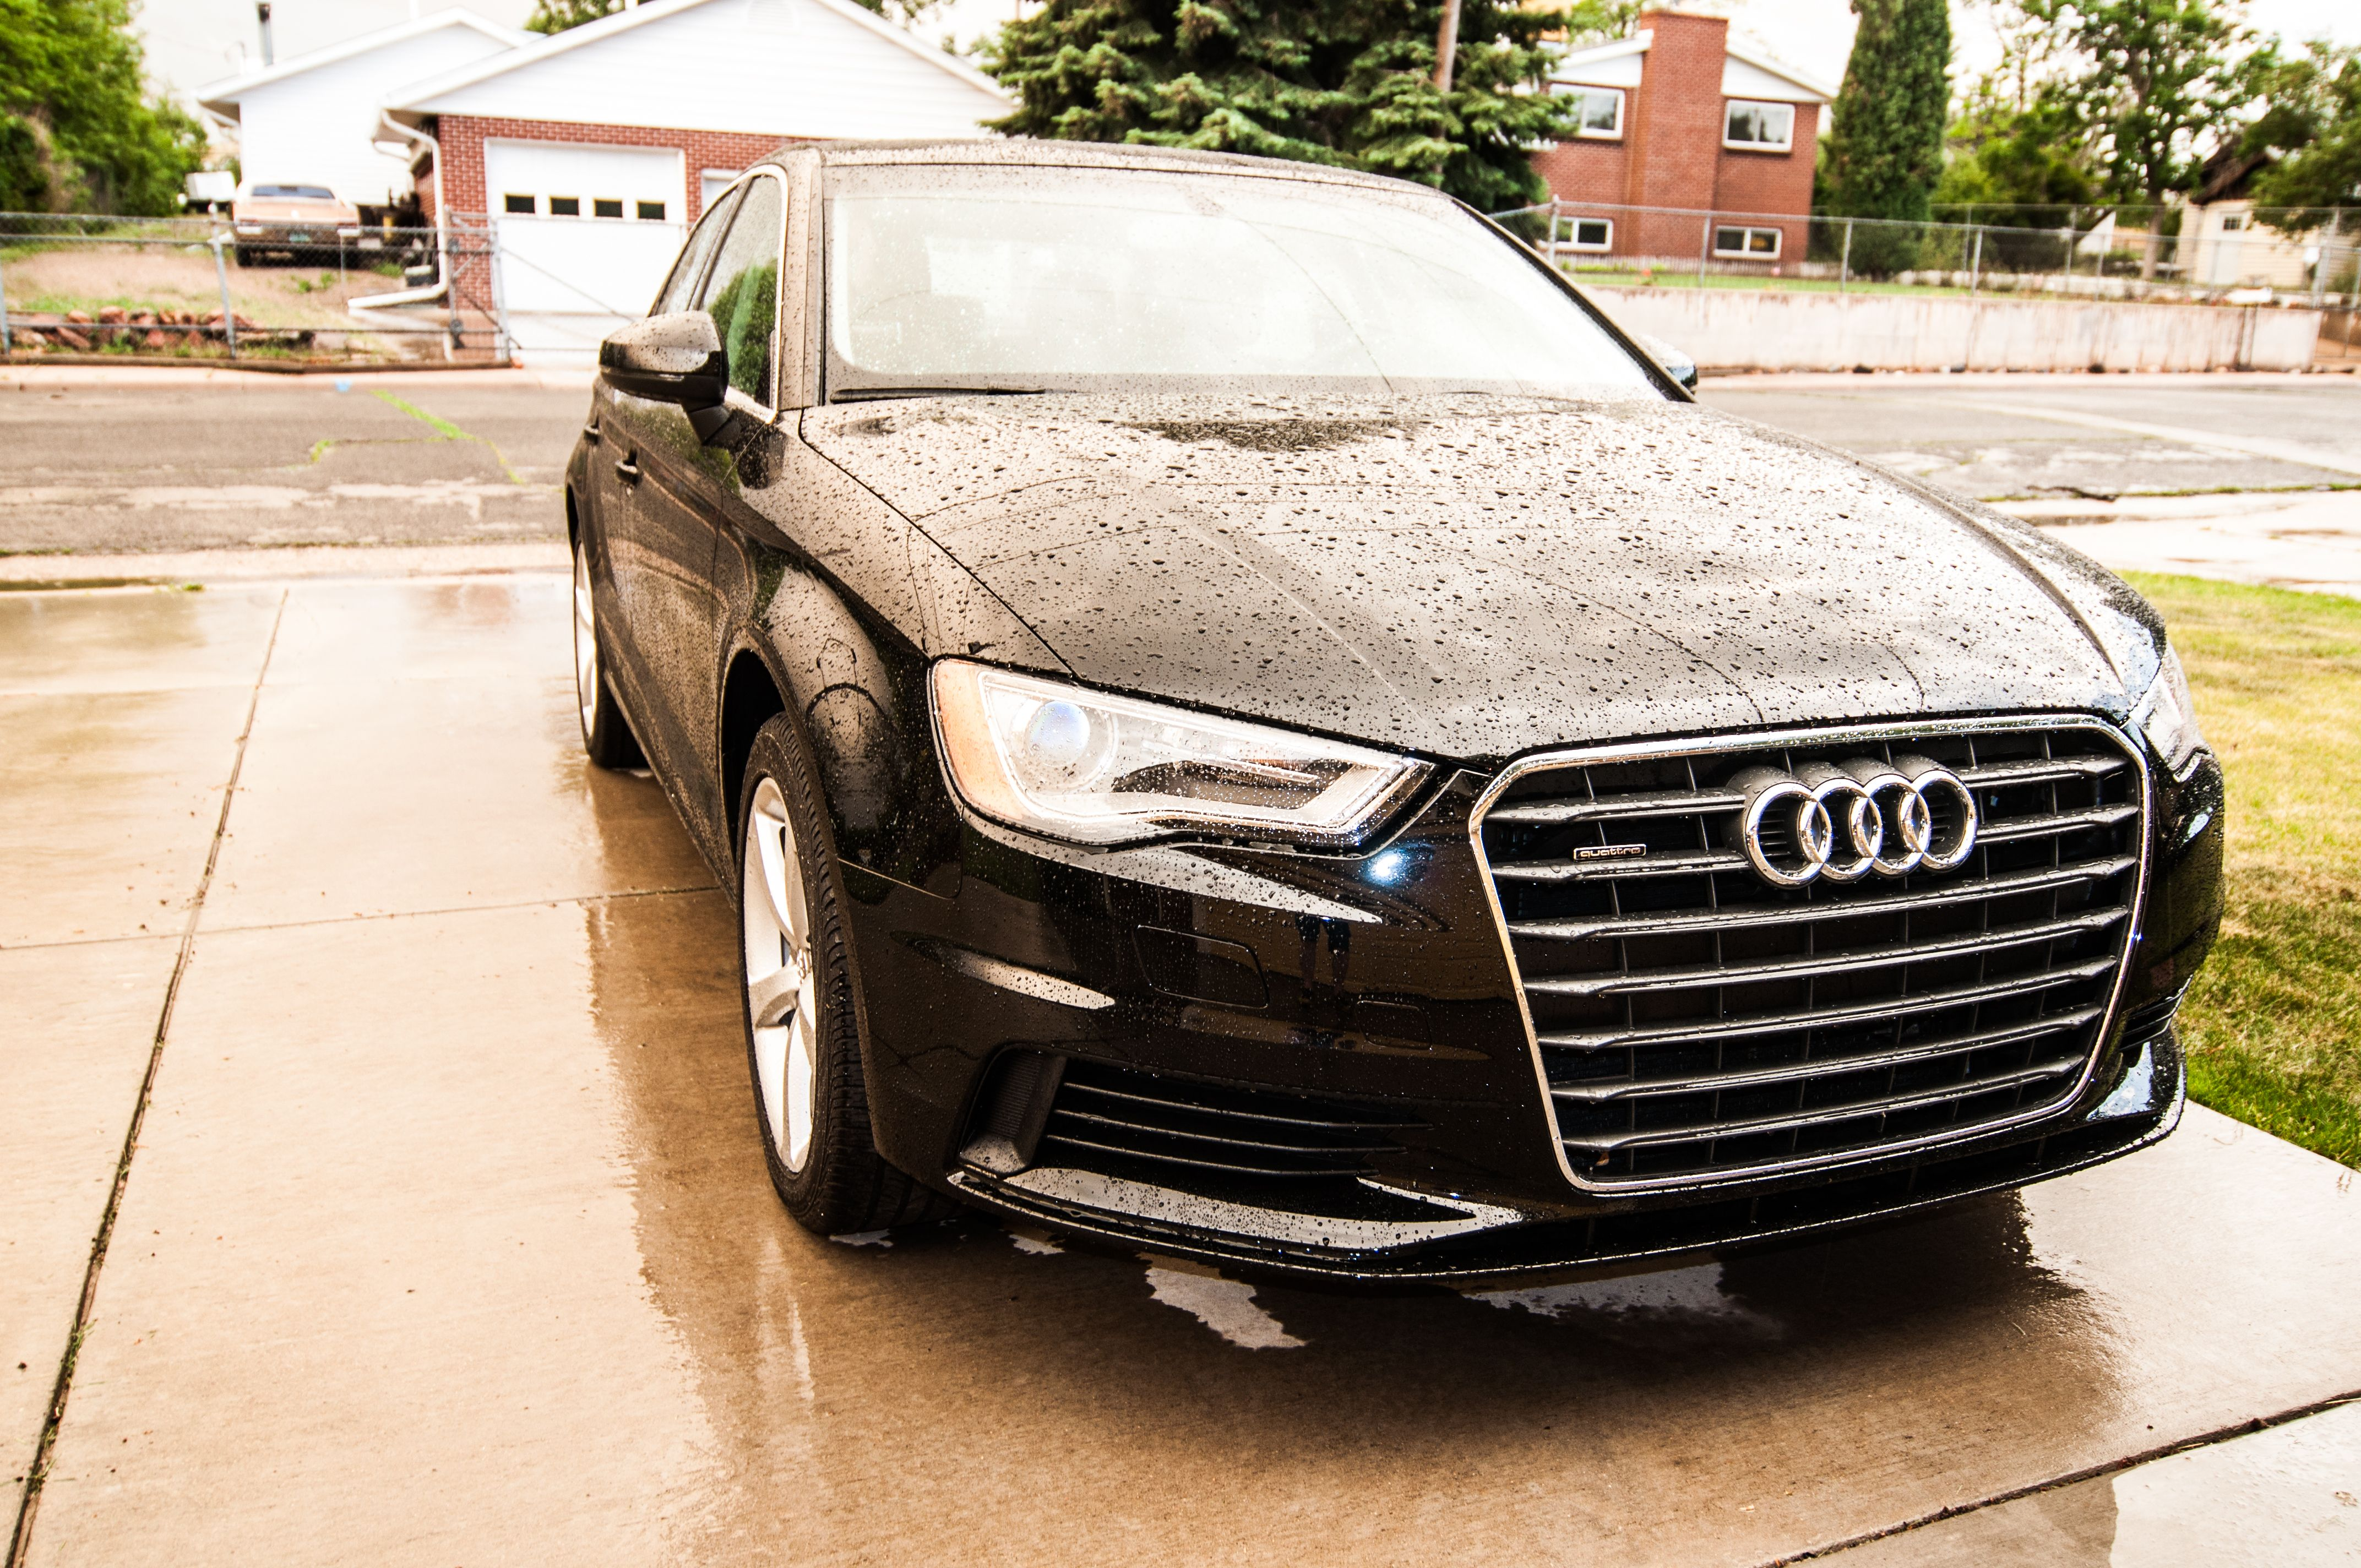 Audi A3 2.0T Quattro Review Review (With images) Audi